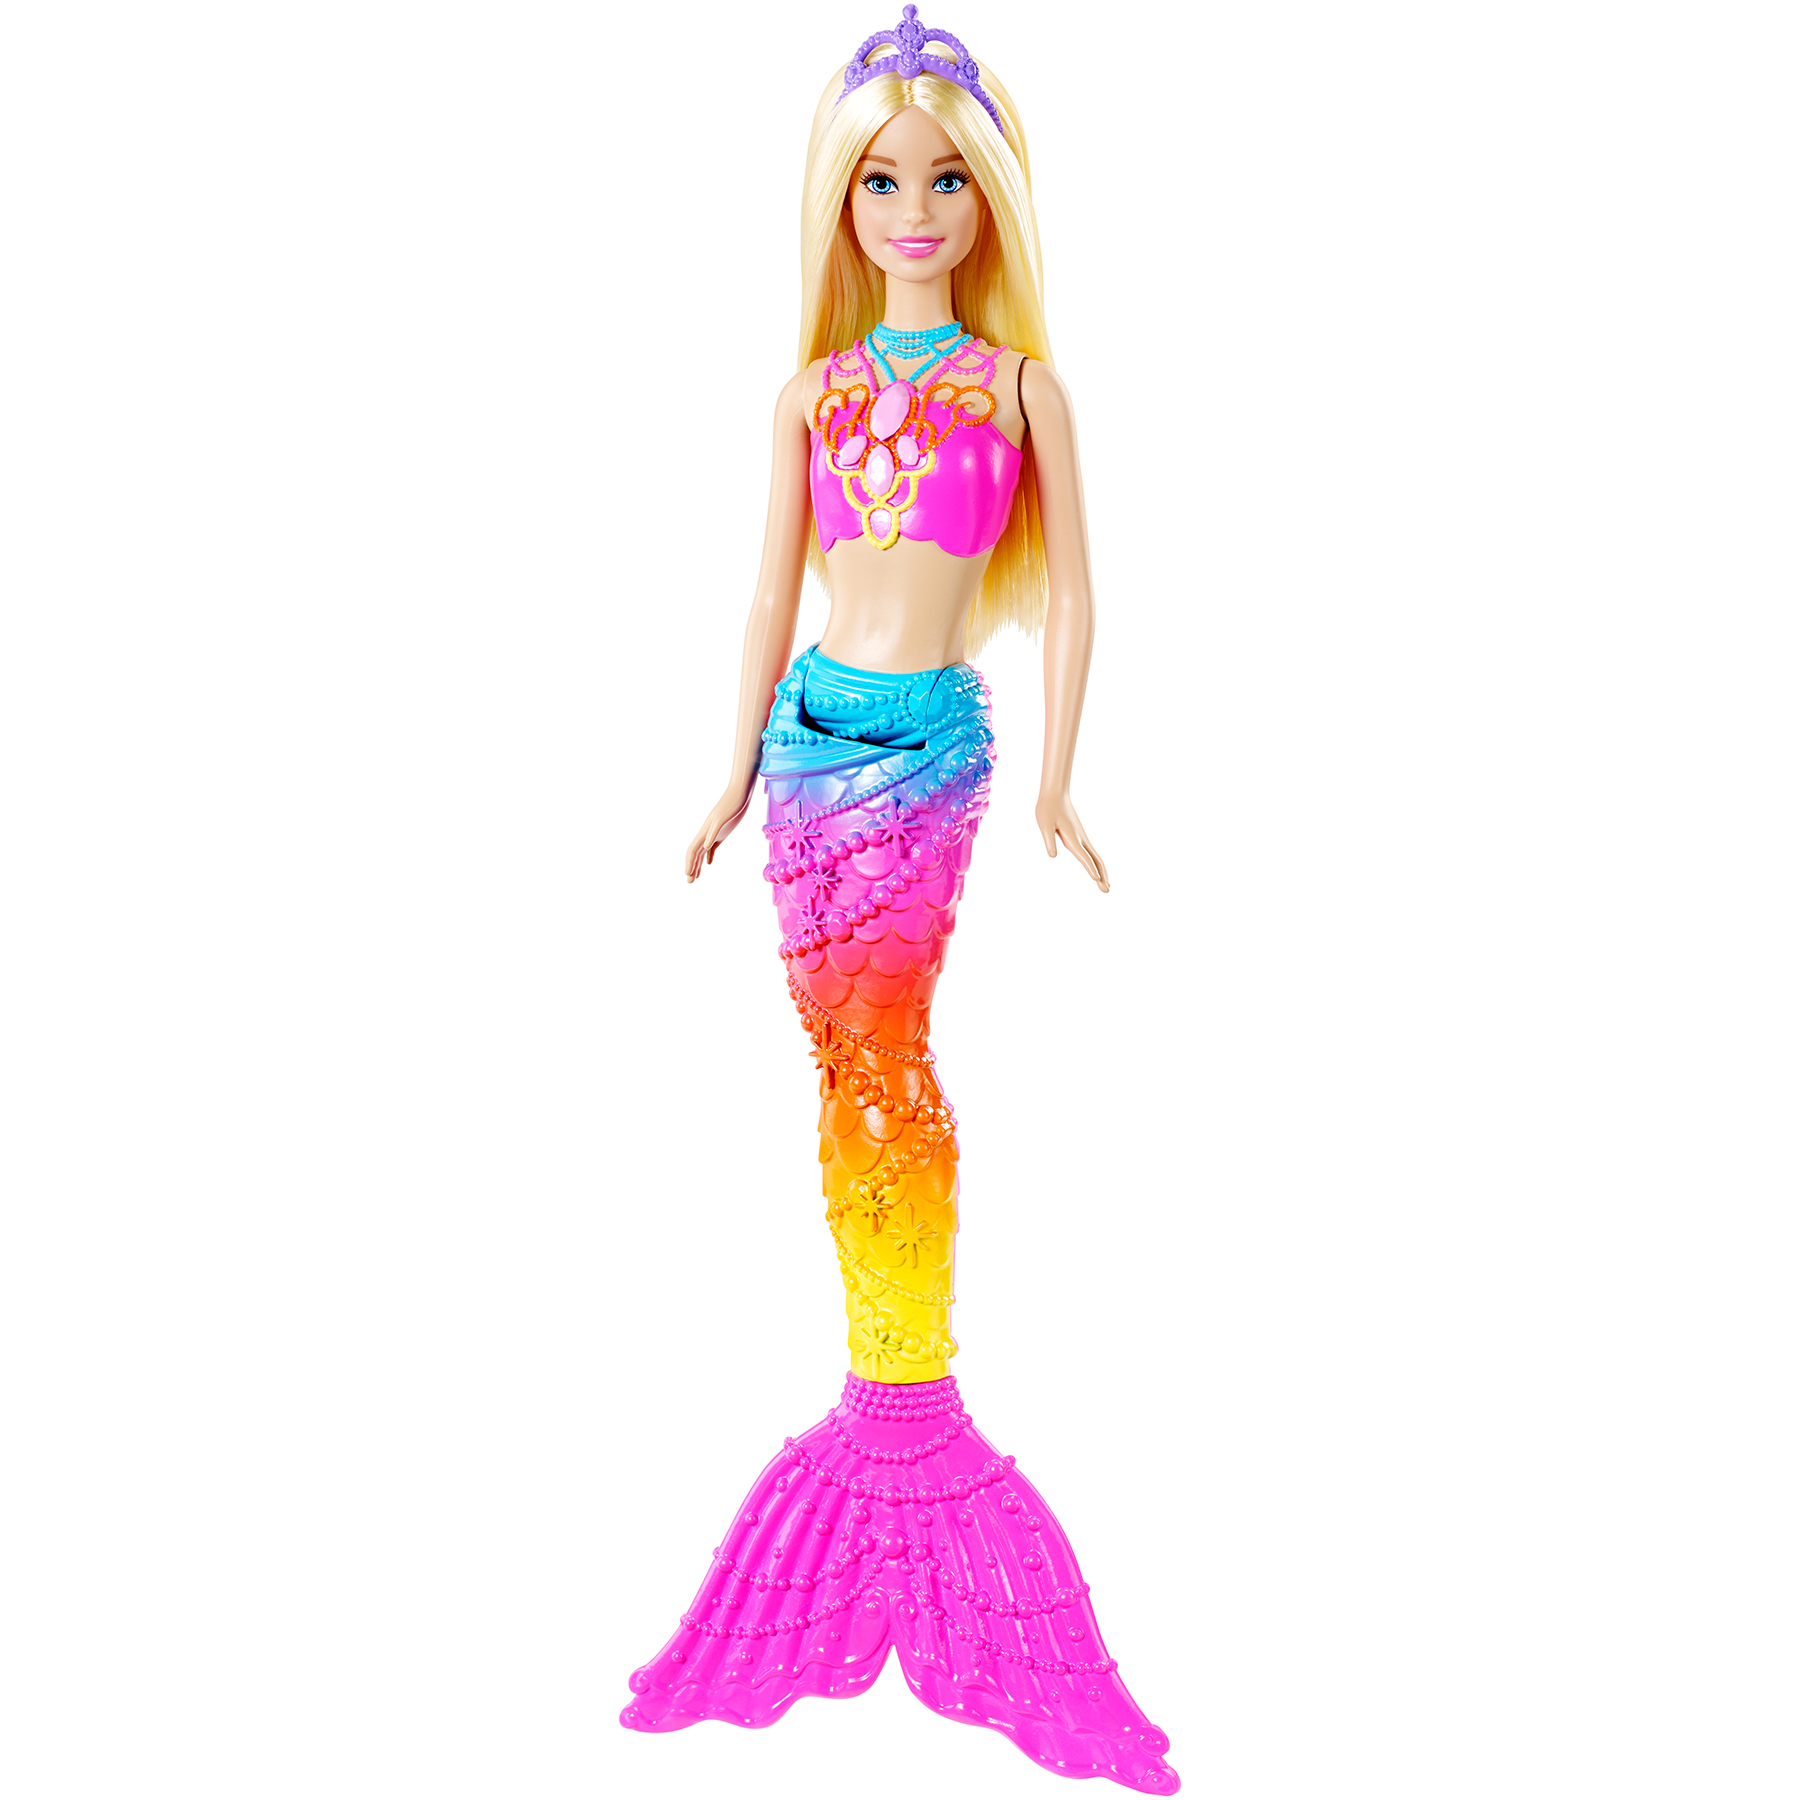 Barbie Toys Australia Barbie Mermaid Doll Blonde Toys And Games Dolls